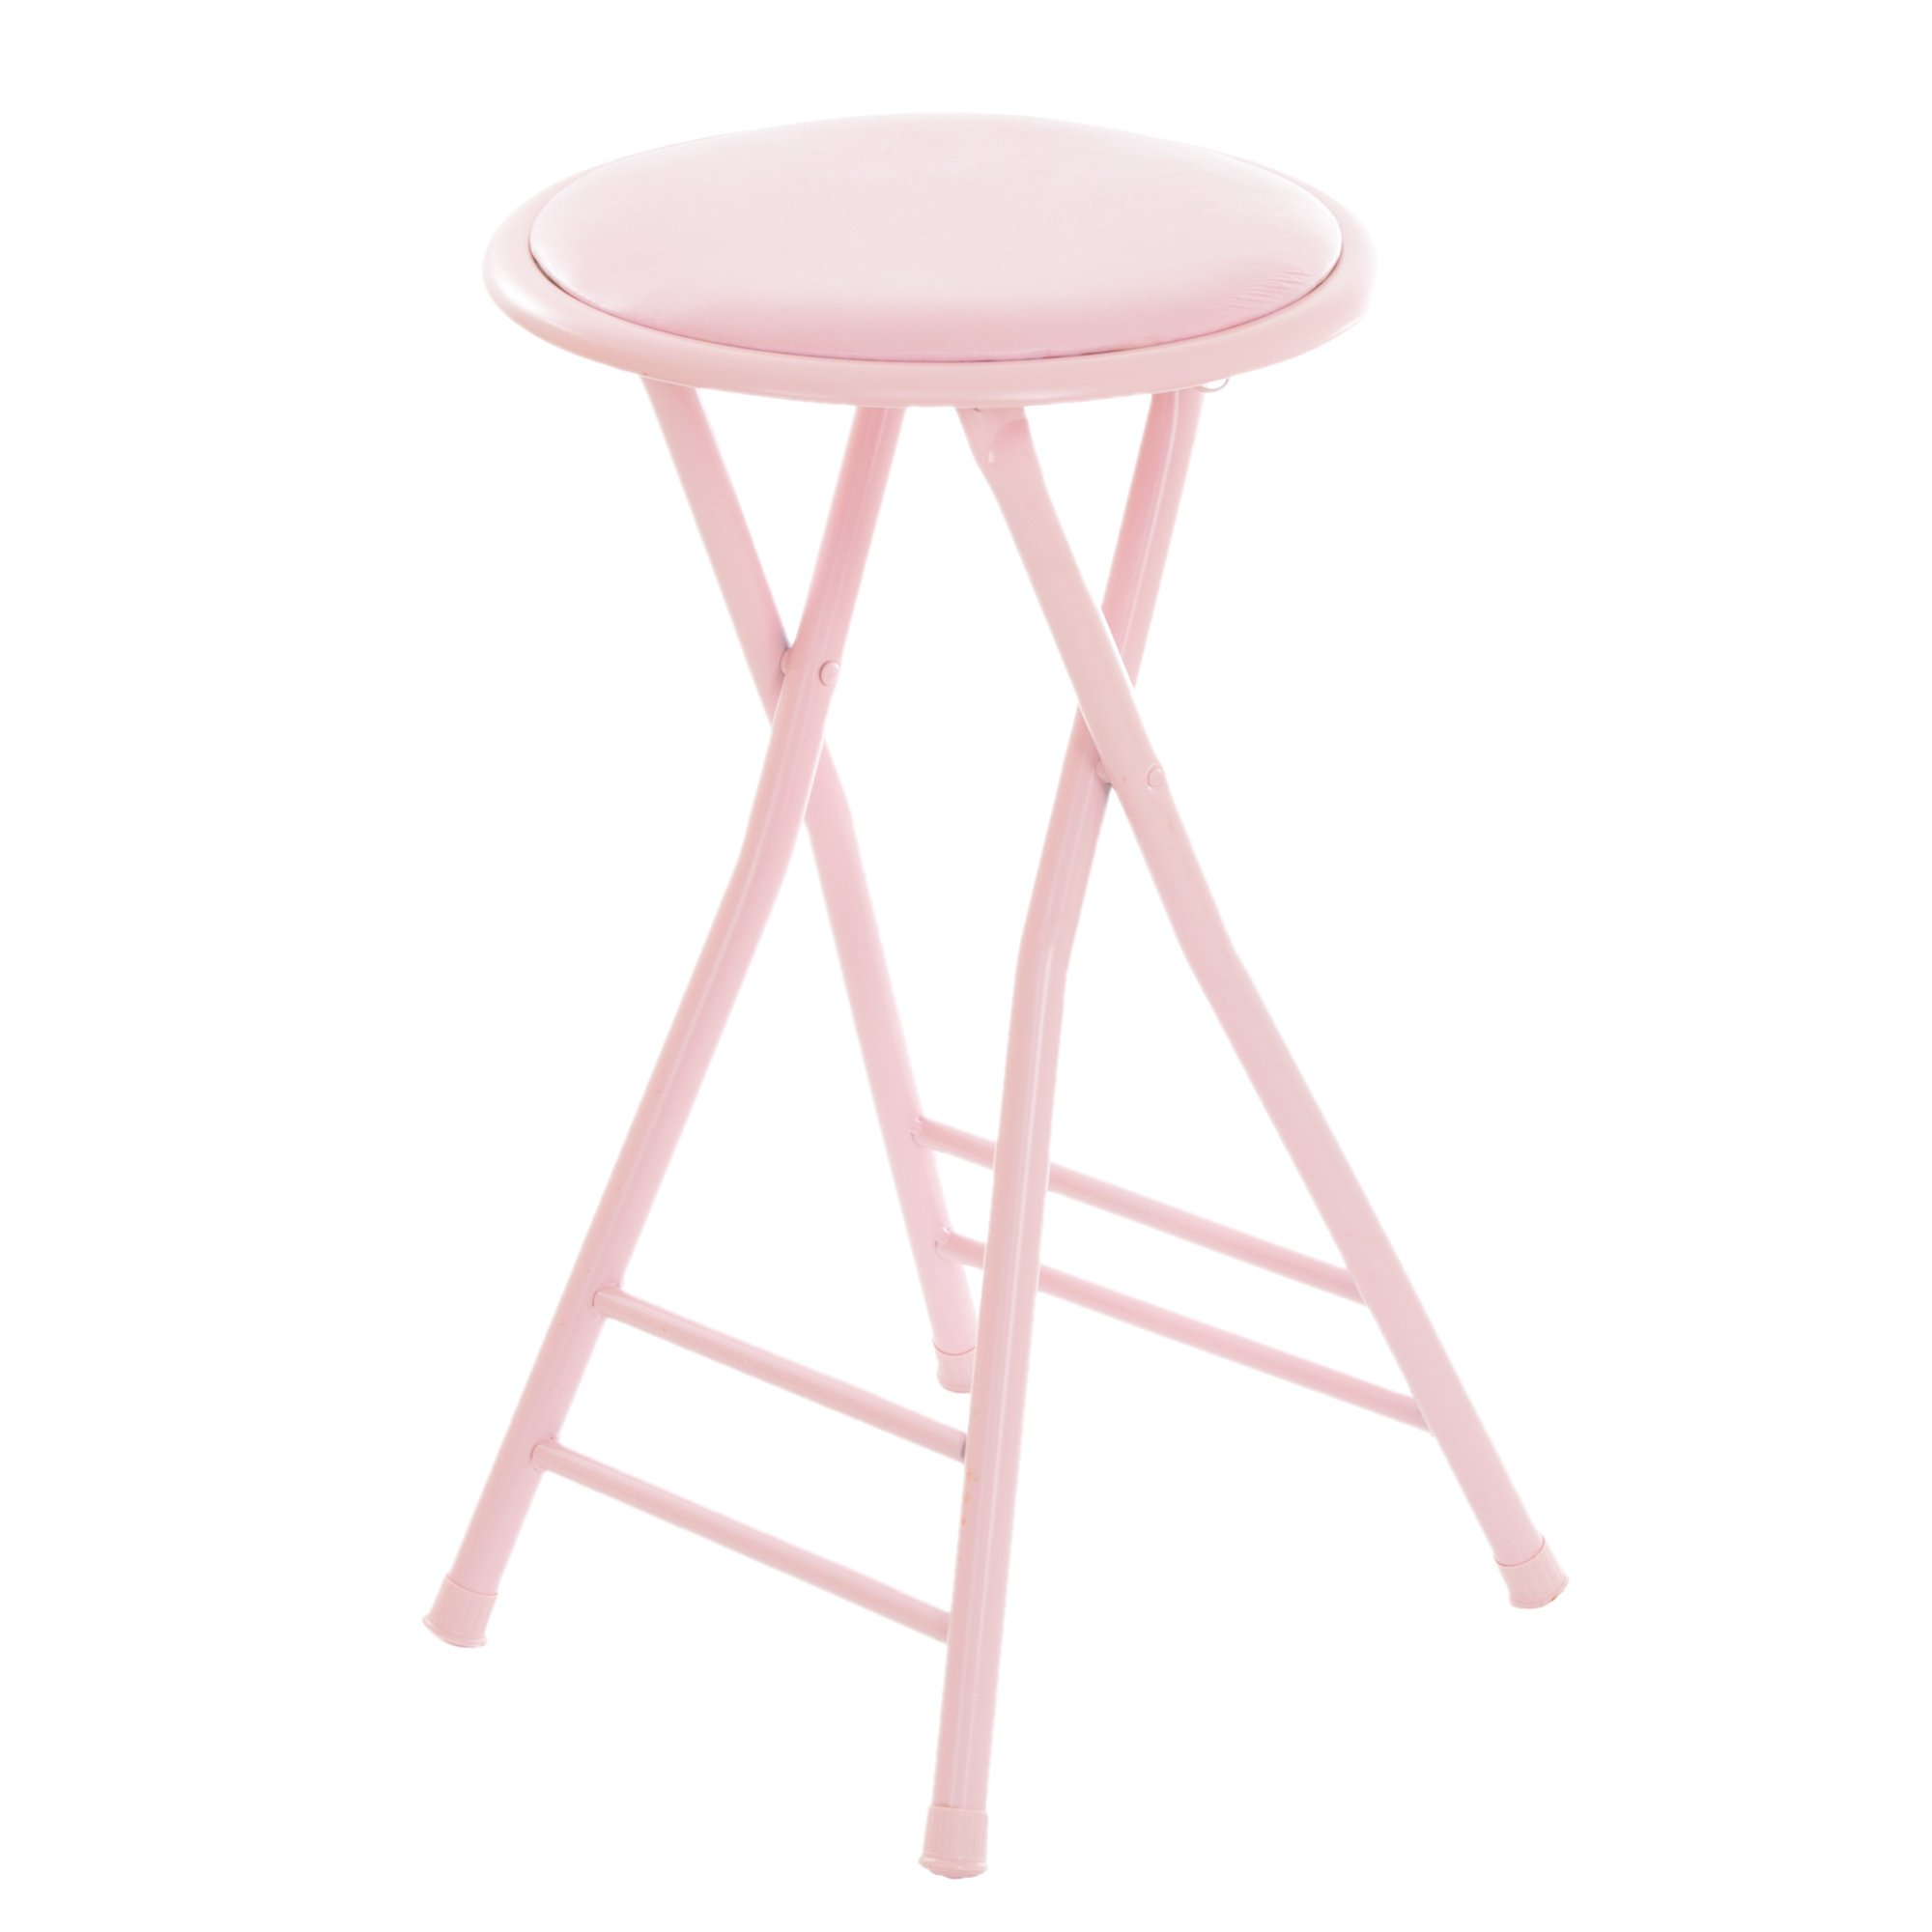 Trademark Home Folding Stool - Heavy Duty 24-Inch Collapsible Padded Round Stool with 300 Pound Limit for Dorm, Rec or Gameroom (Pink) by Trademark Home Collection